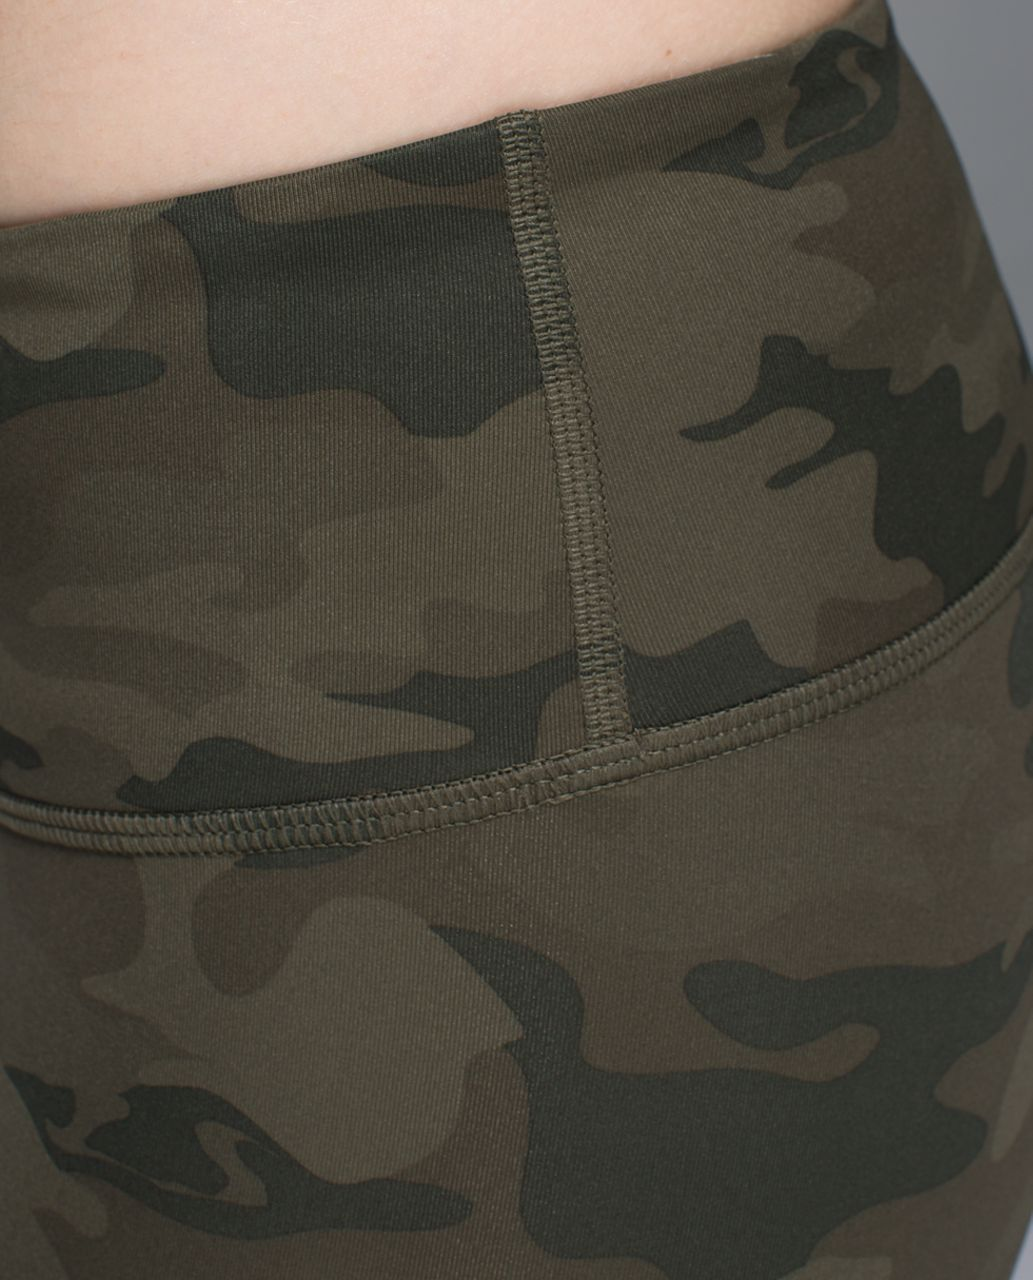 Lululemon Wunder Under Crop *Full-On Luxtreme - Savasana Camo 20cm Fatigue Green